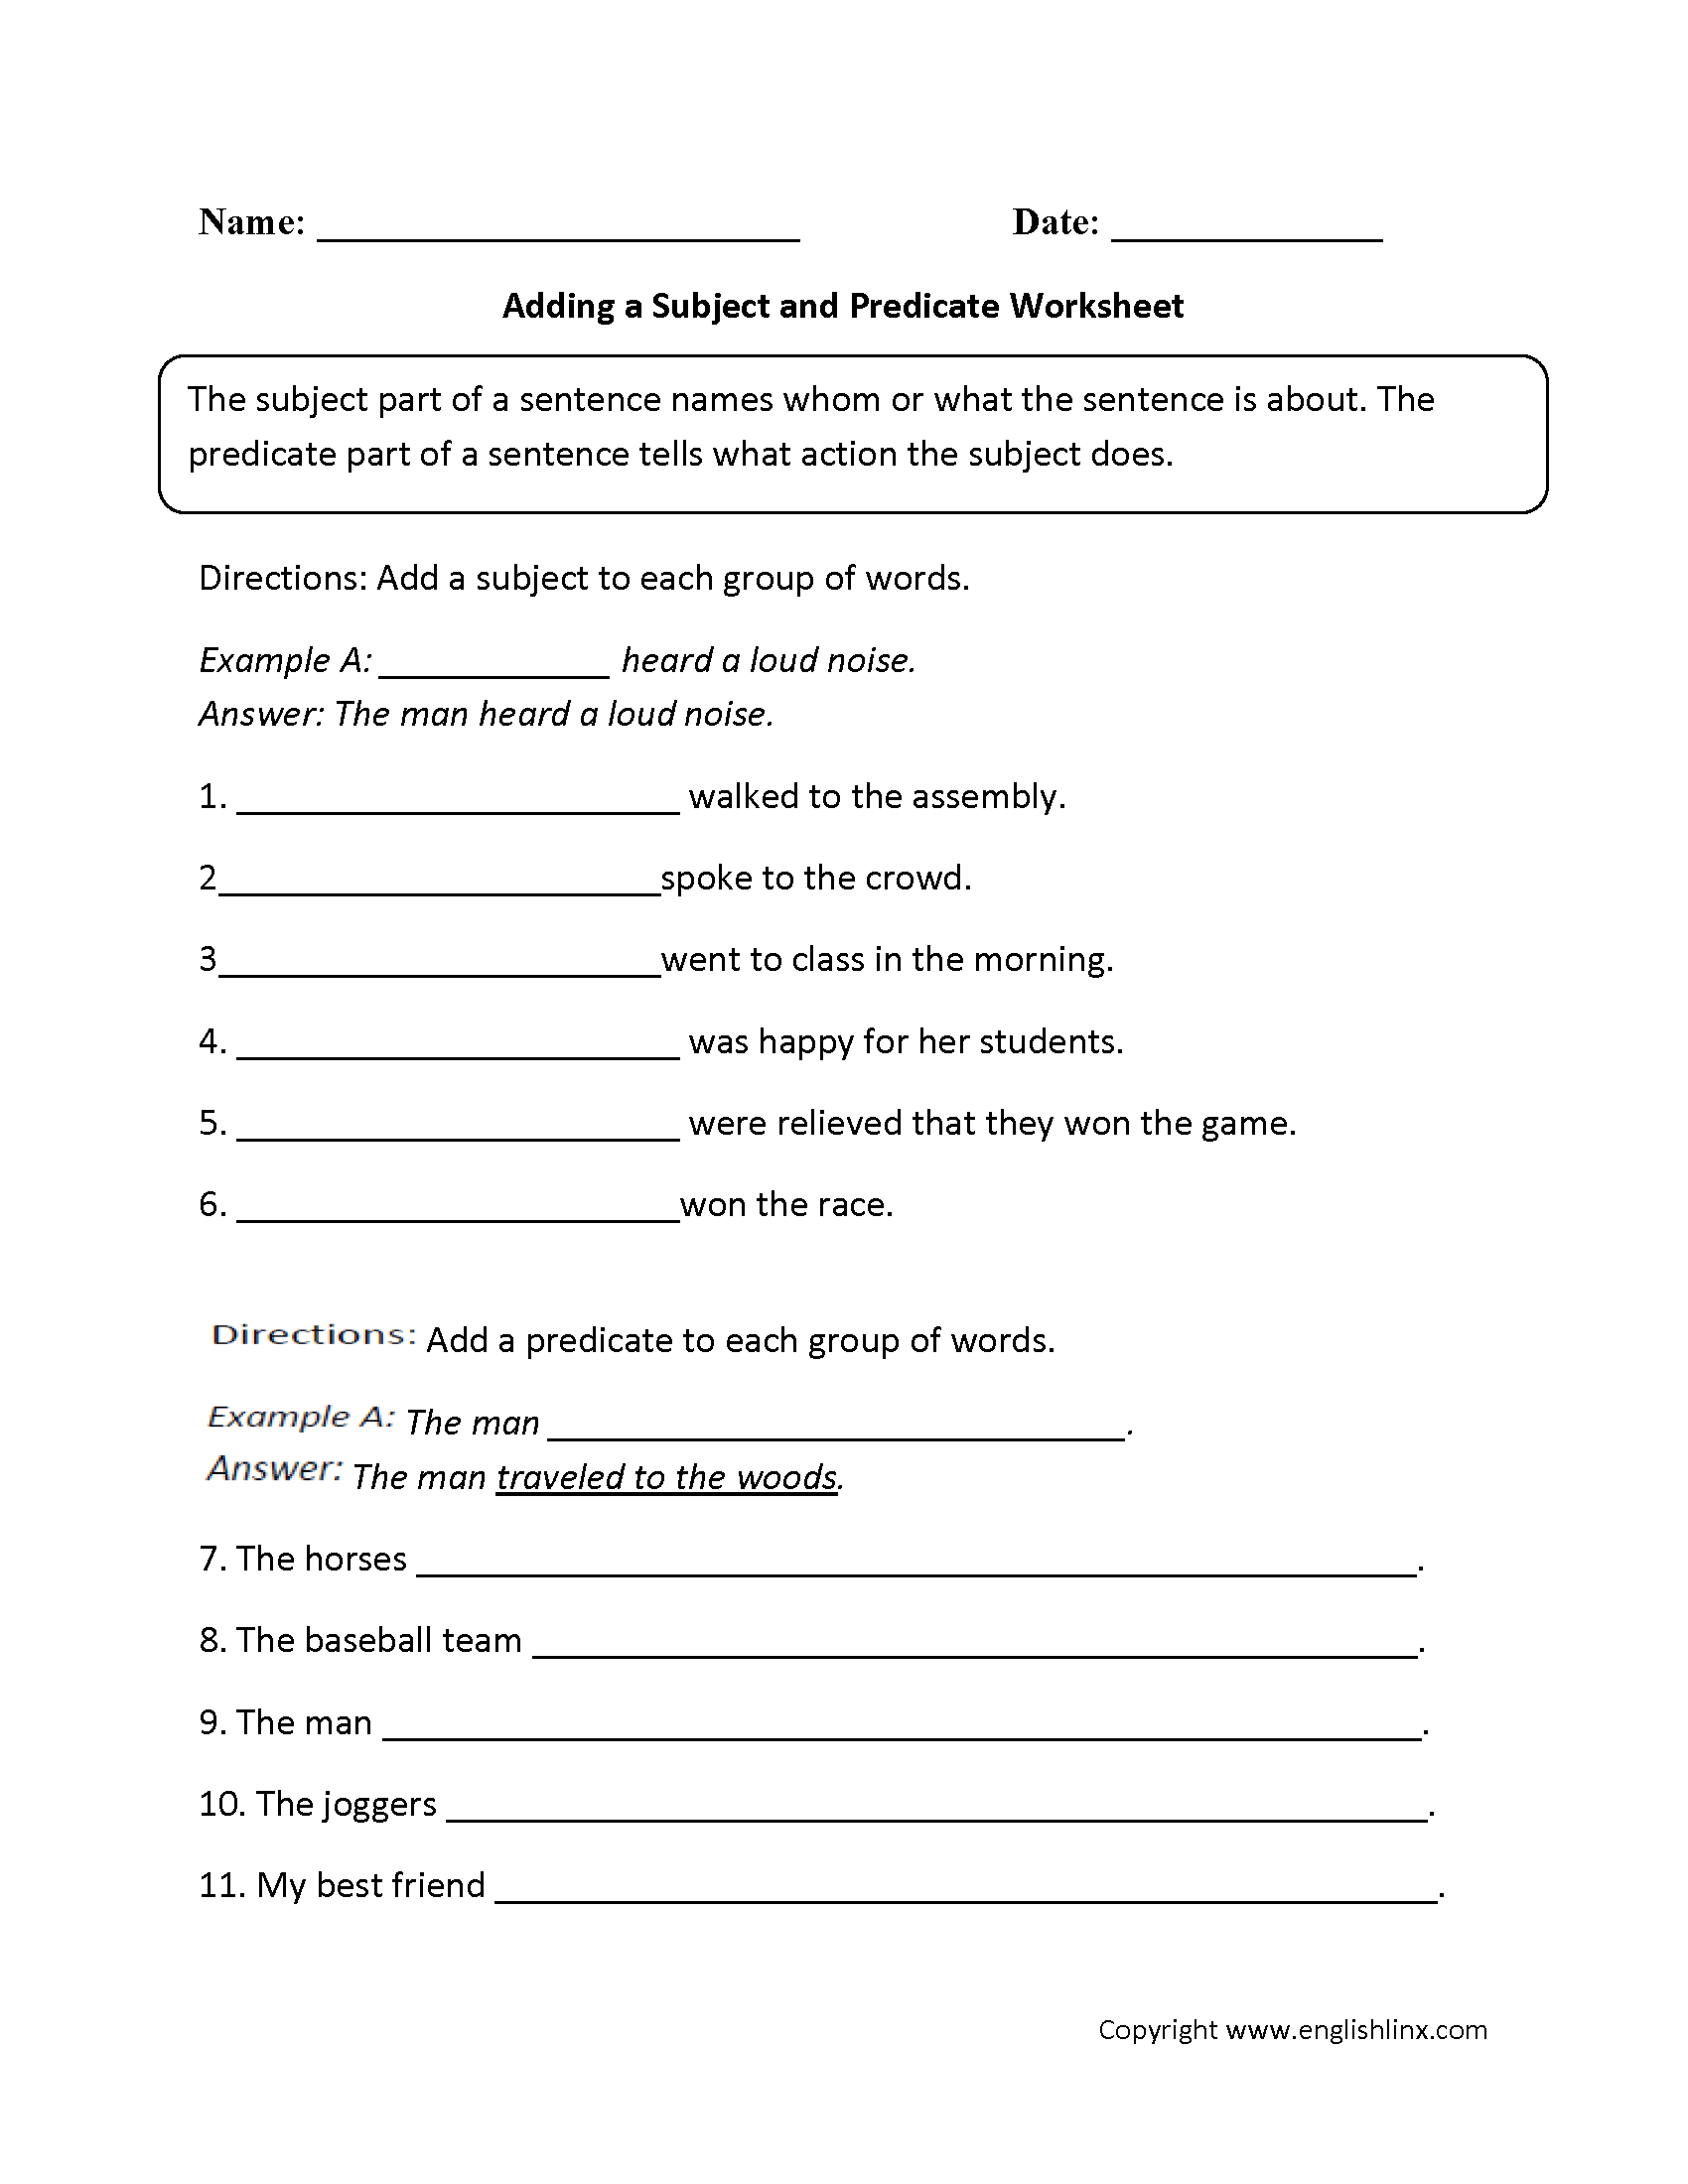 Worksheets Subject And Predicate Worksheet englishlinx com subject and predicate worksheets adding a subejct worksheet